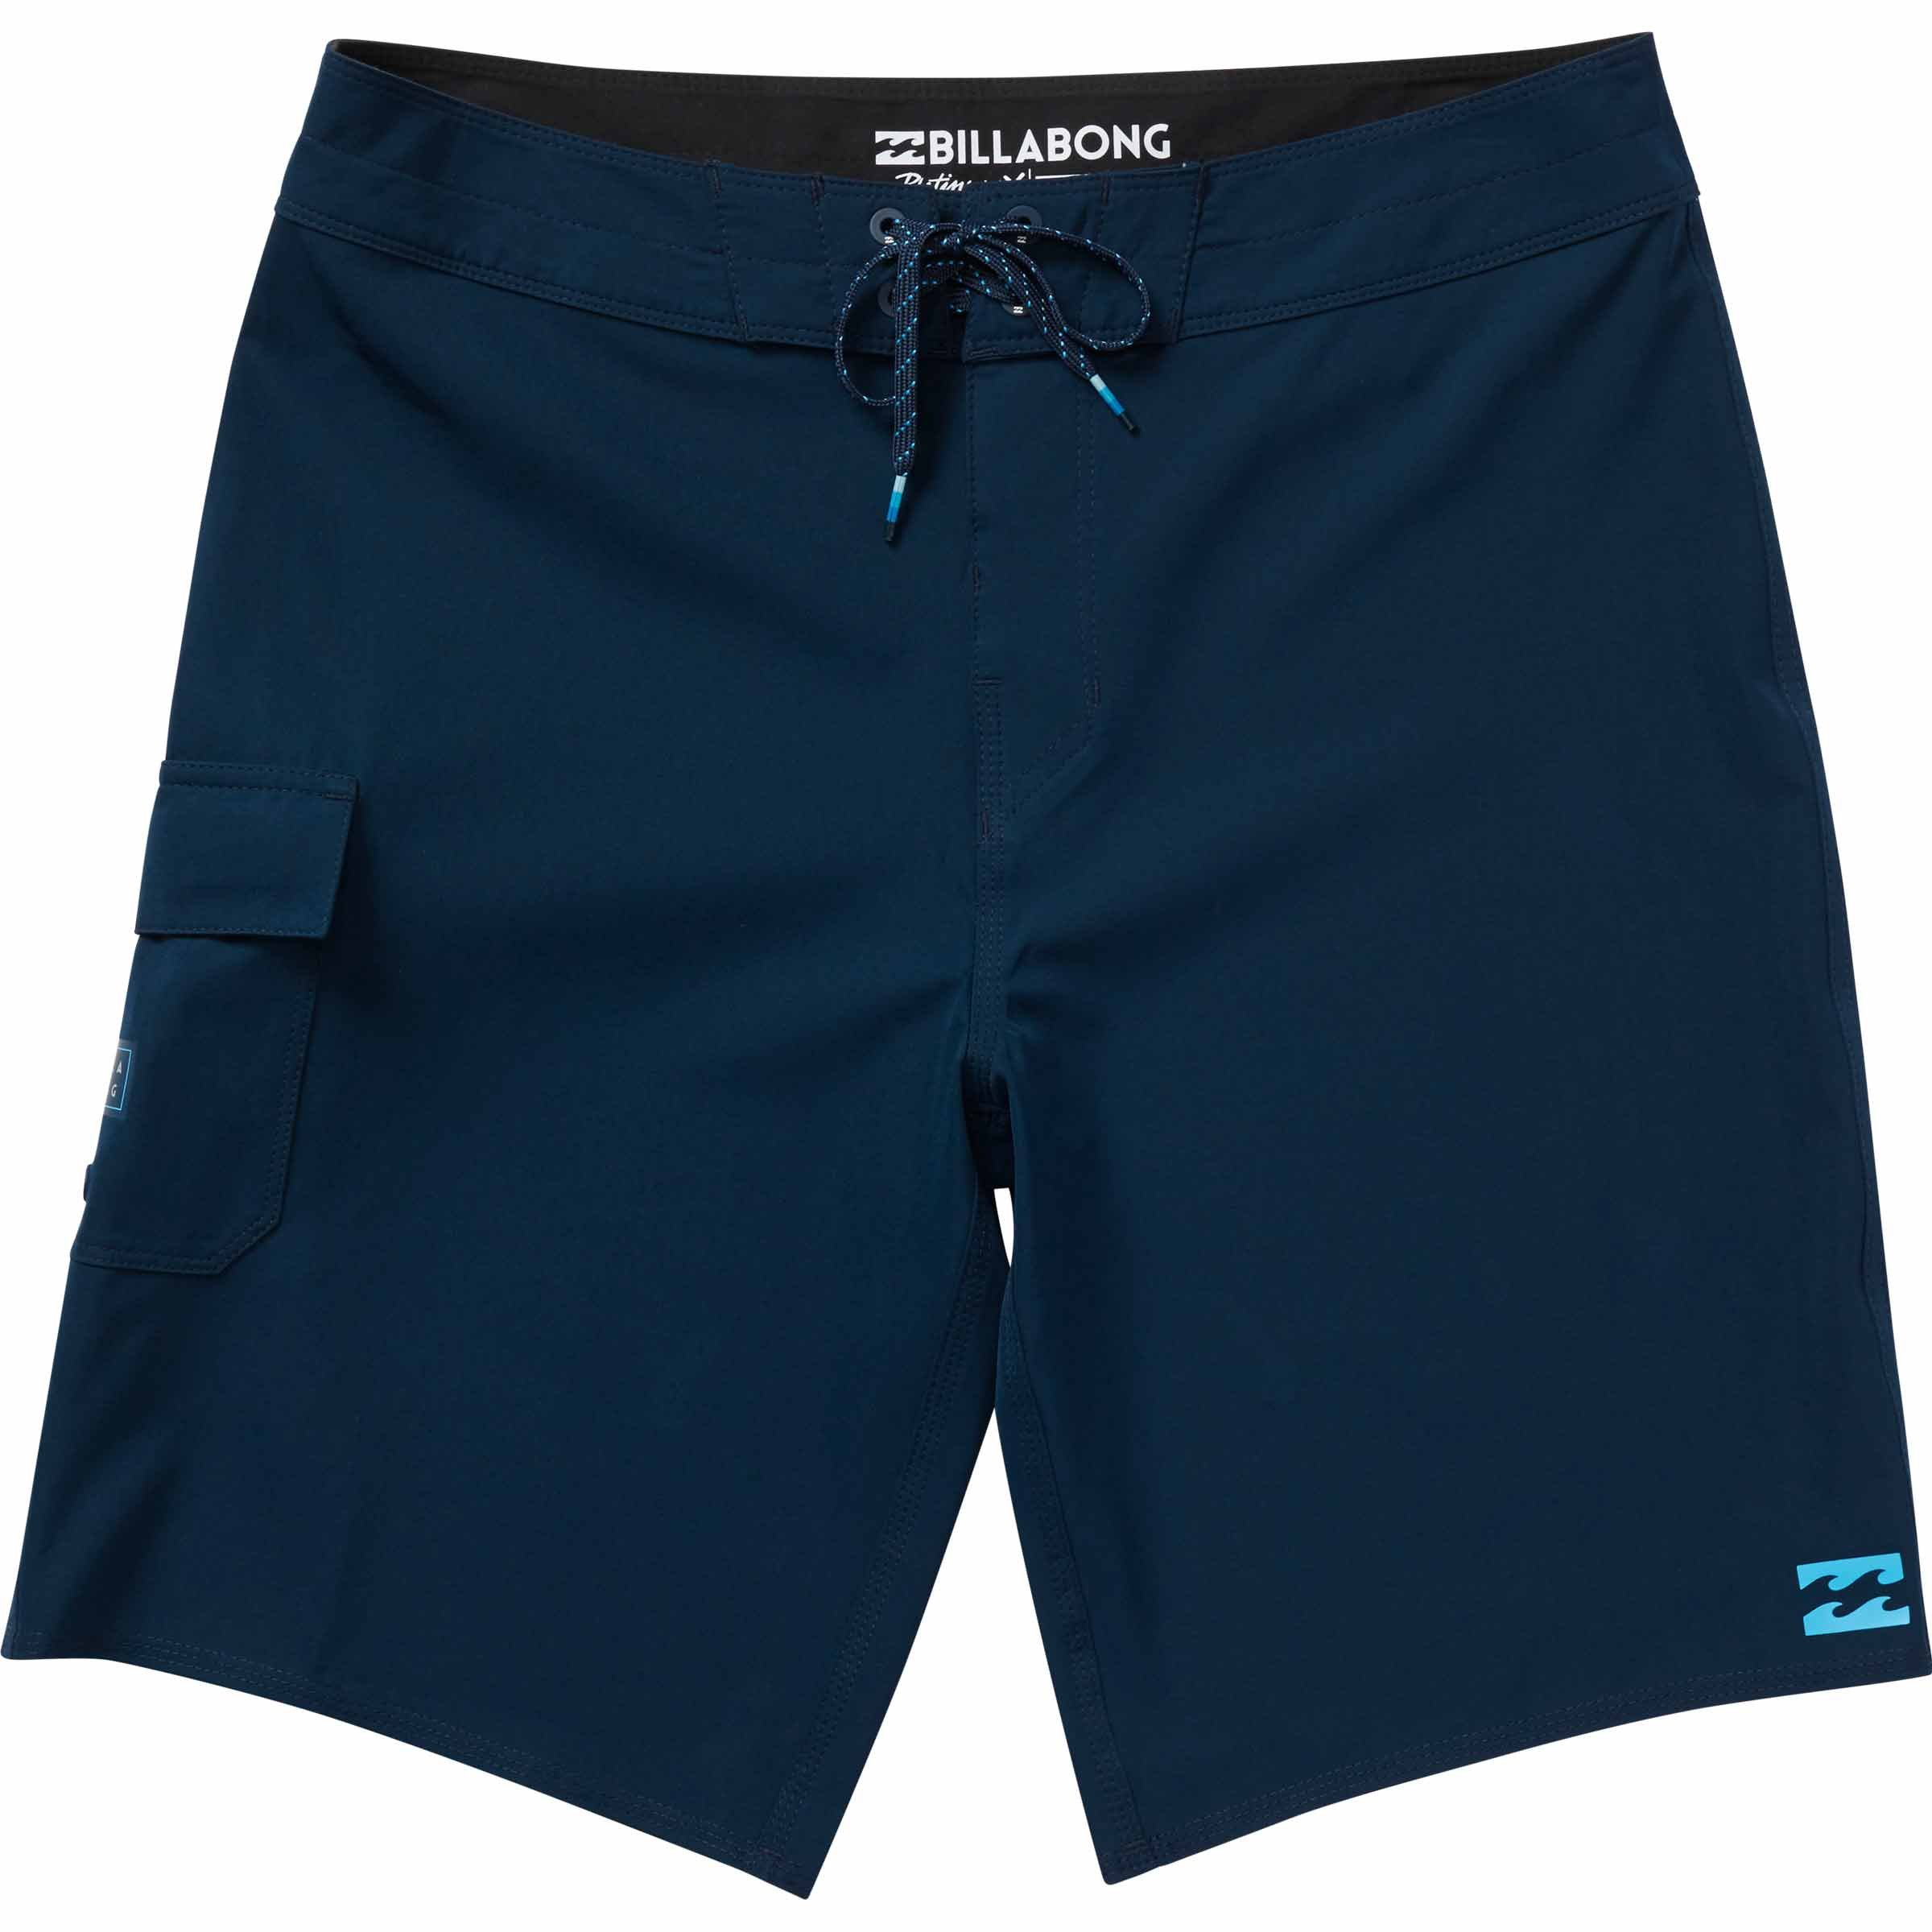 Billabong Men's All Day X Boardshorts Navy 42